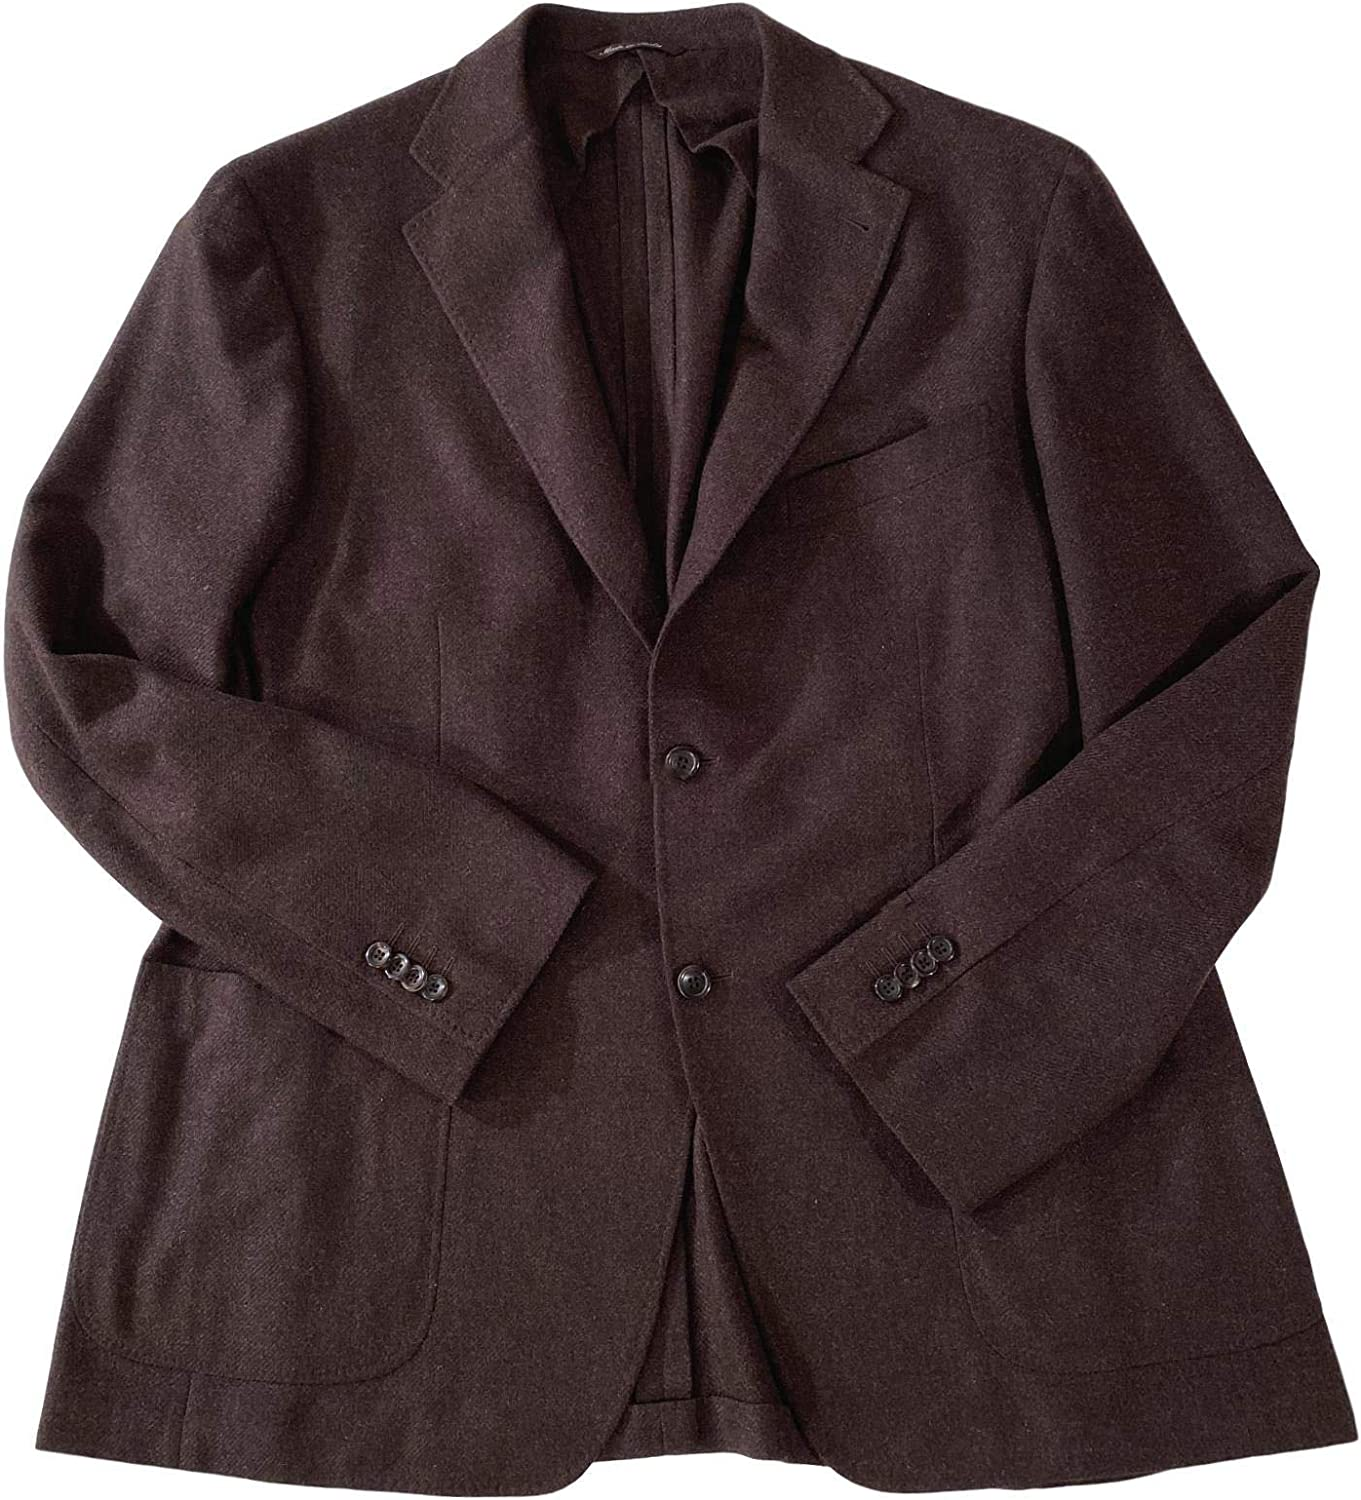 Canali Men's KEI Collection Dark Brown Cashmere/Wool Unlined 2 Button 2 Vent Topstitched Blazer Sportcoat Size US 46R